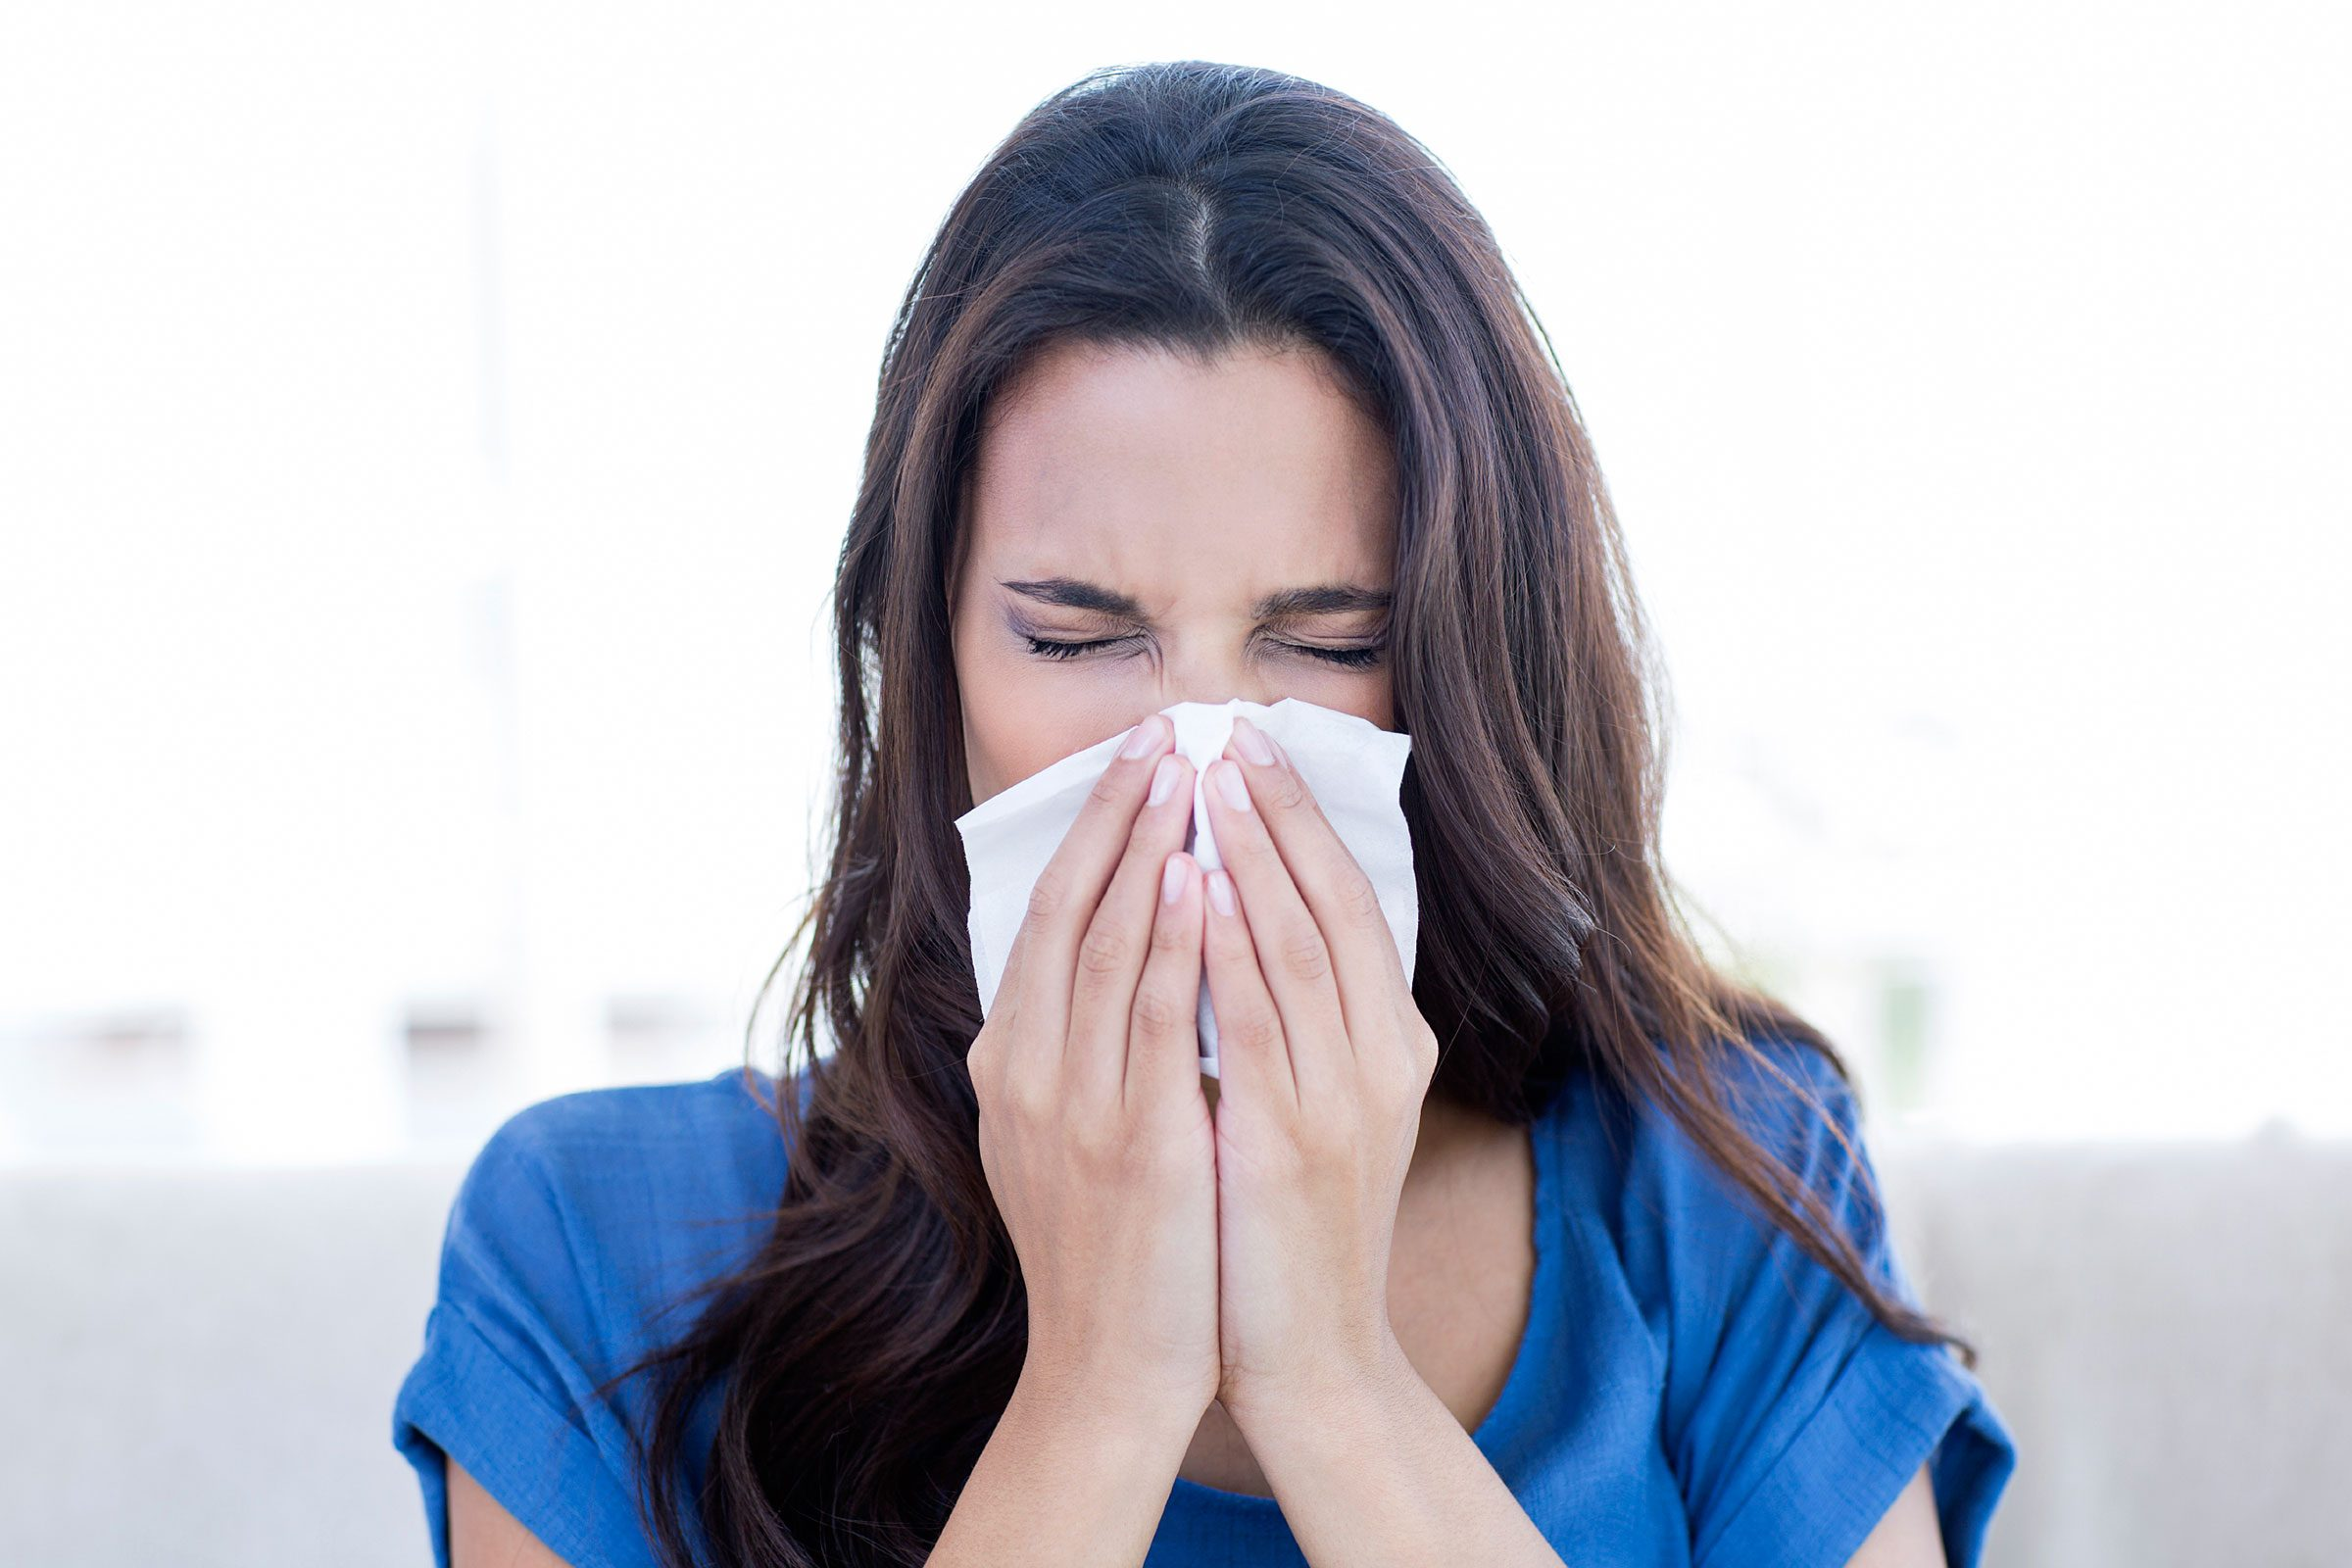 Minimize activities outdoors when pollen counts are at their peak